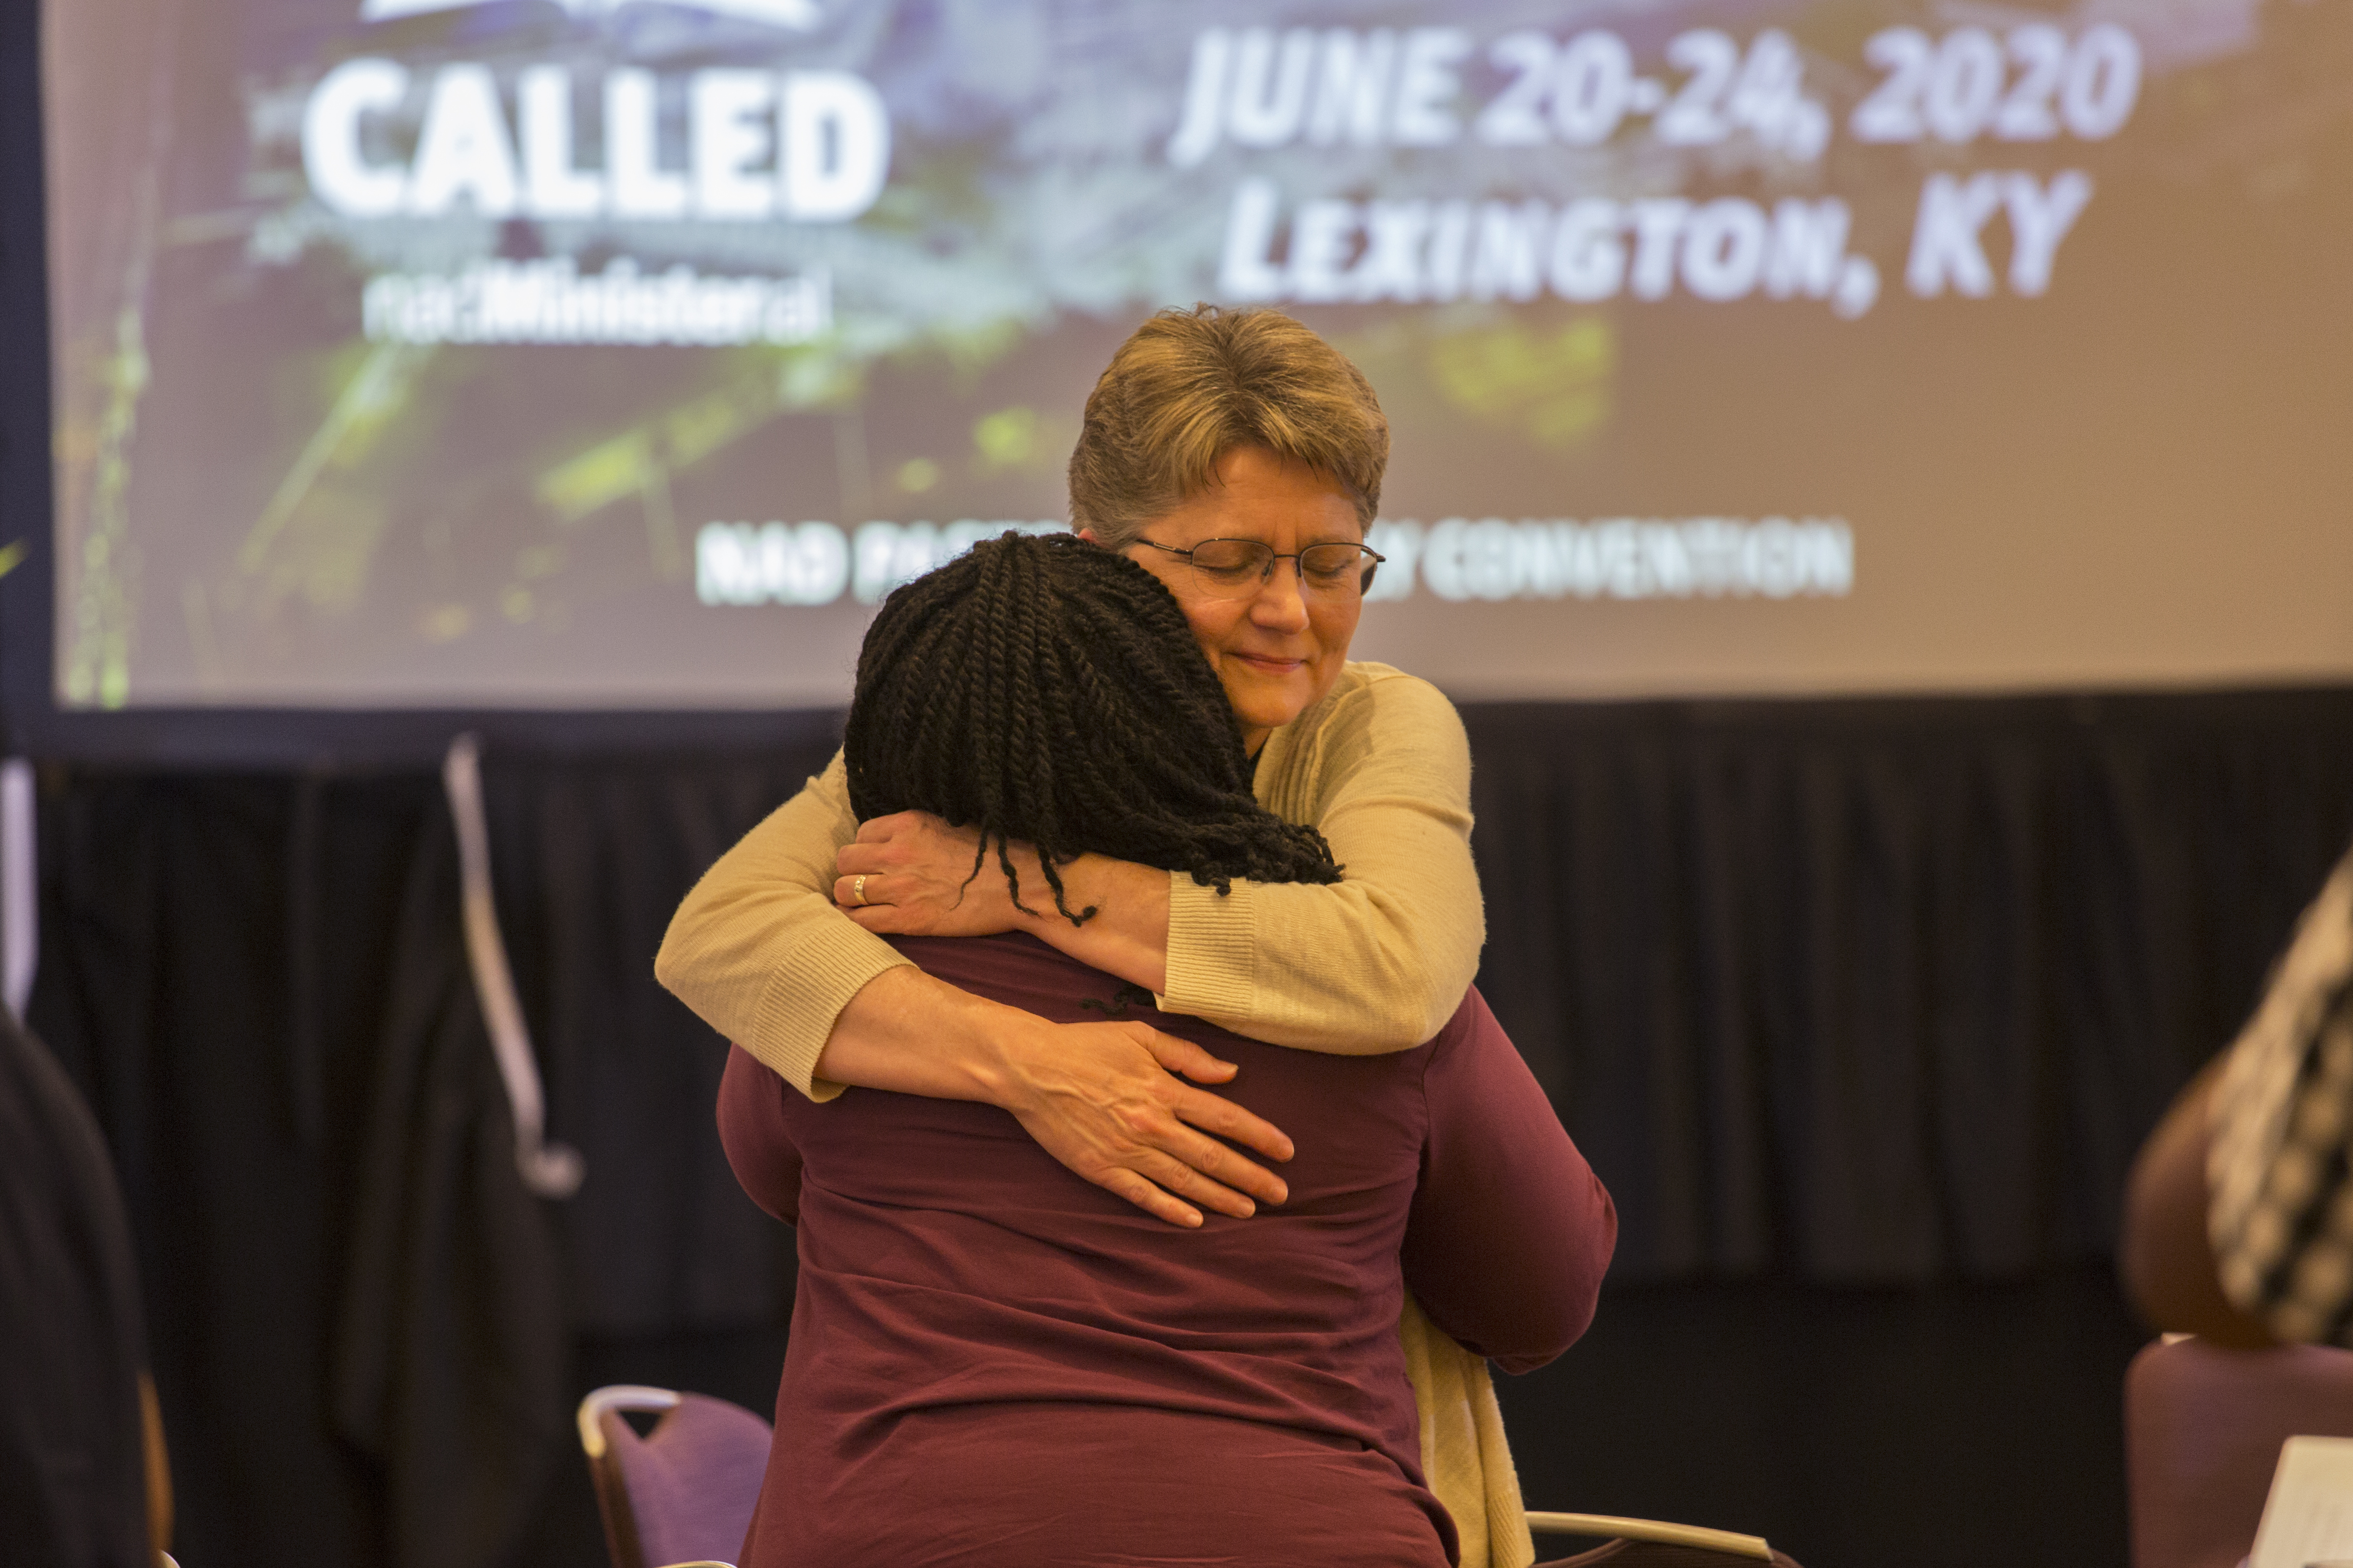 The clergy seized every opportunity to encourage each other through prayer, and expressions of support and love.